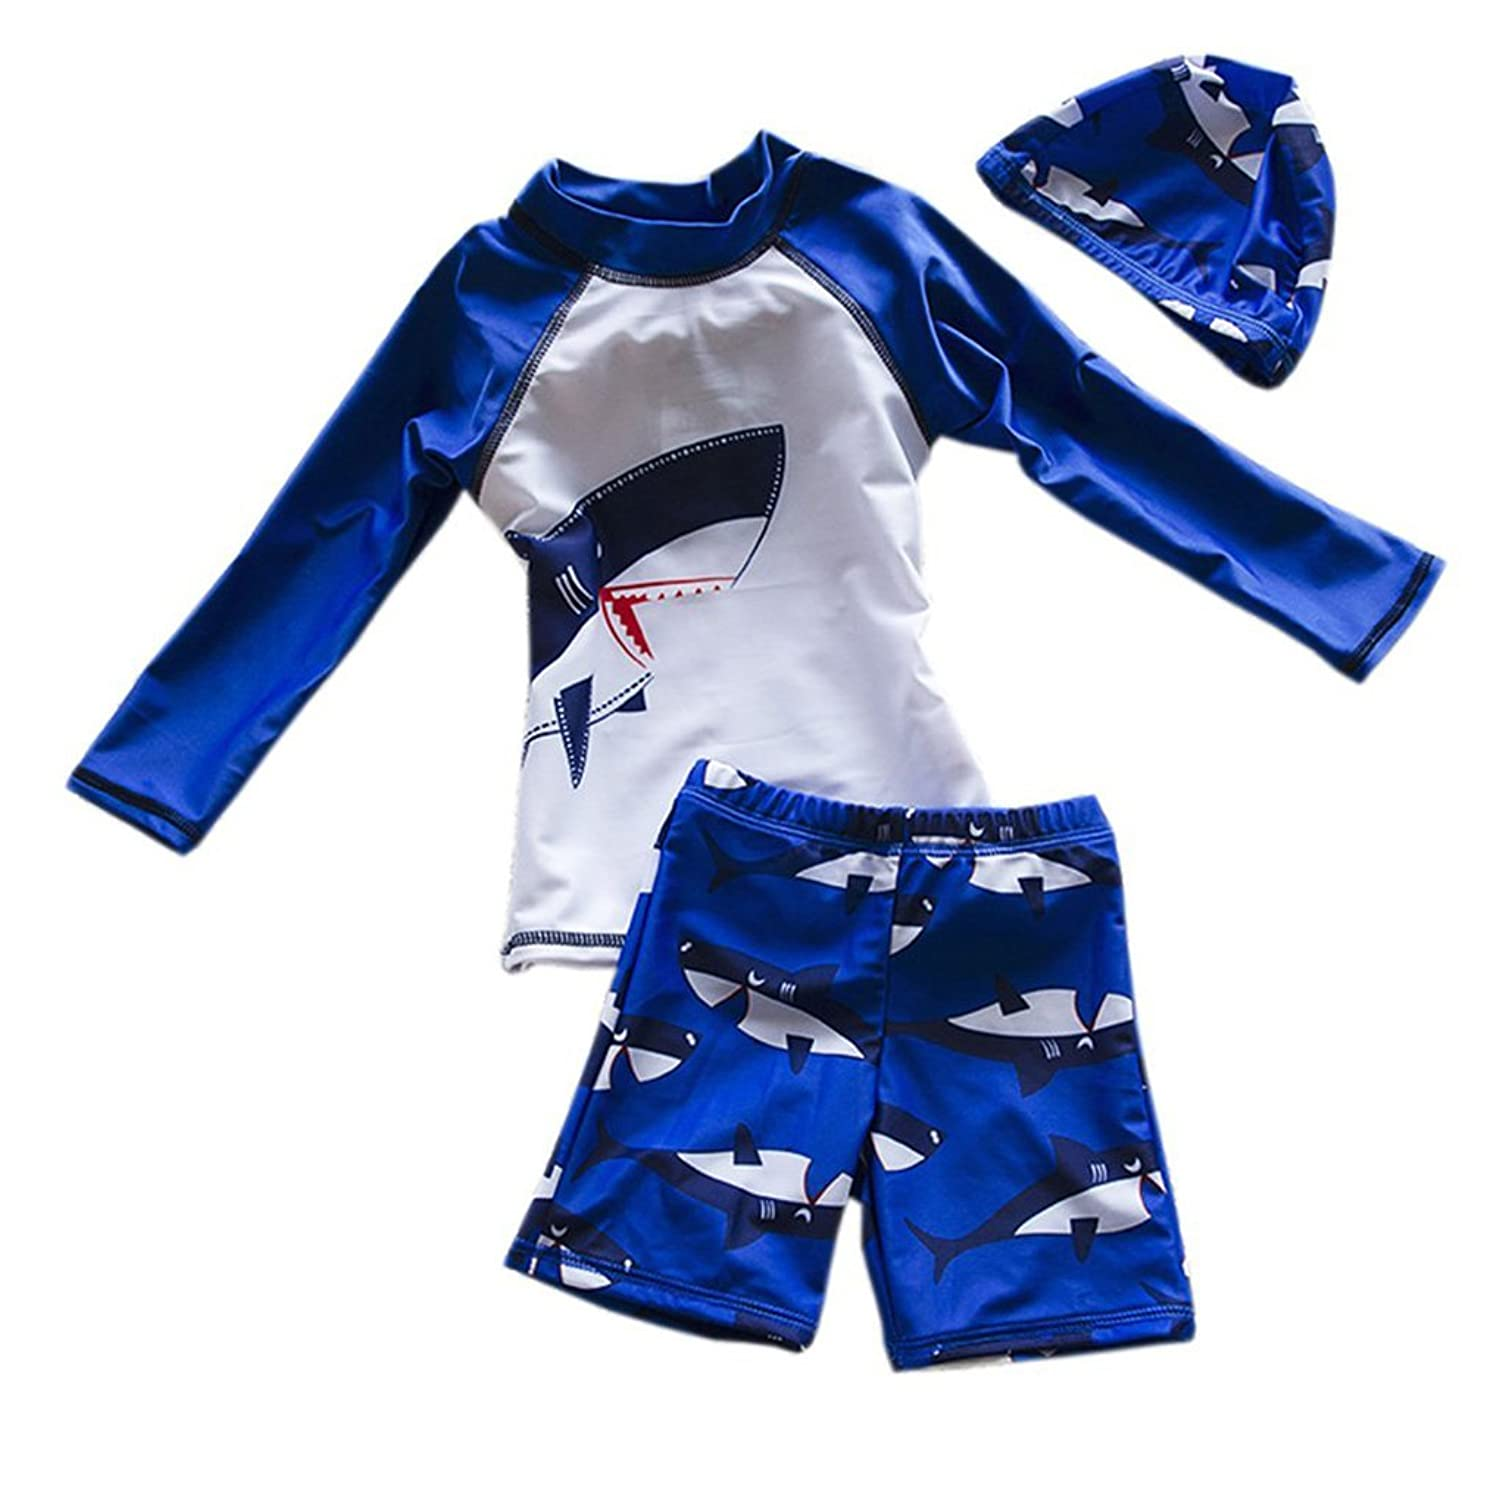 d59dc1d71a Perfect Fit: 5 size for 2-3/4-5/6-7/7-8/8-9 years old boy. ☆ Super Cute:  Shark Printed,Boy rash guard swimwear with cool shark pattern for a  flattering ...